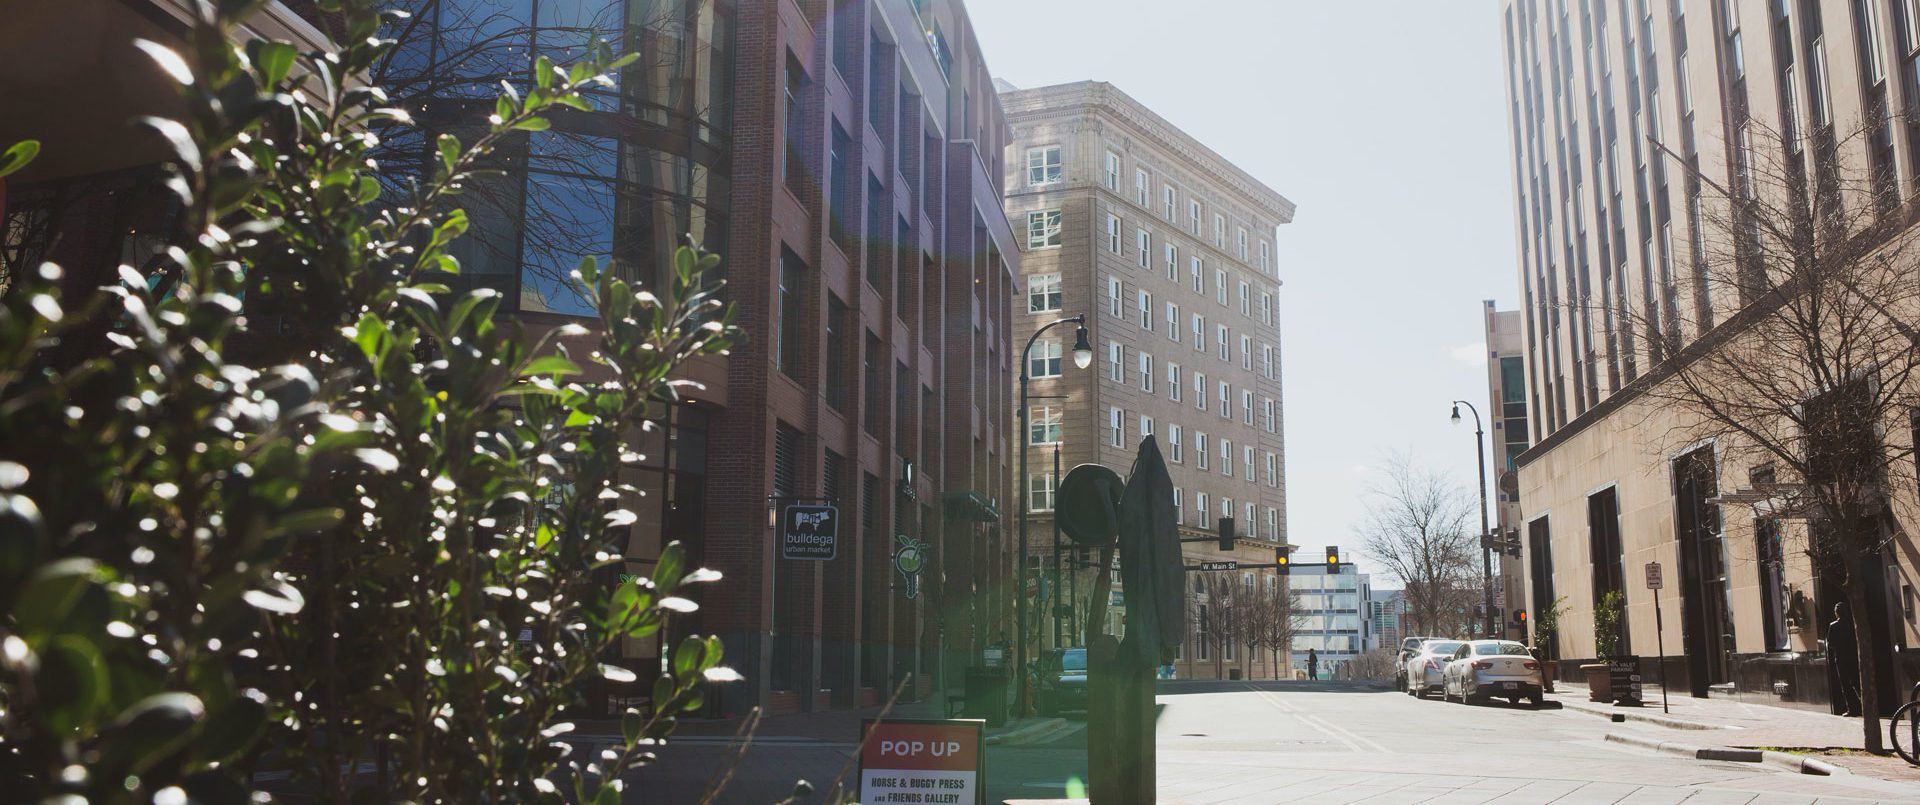 street level view of downtown Durham, NC